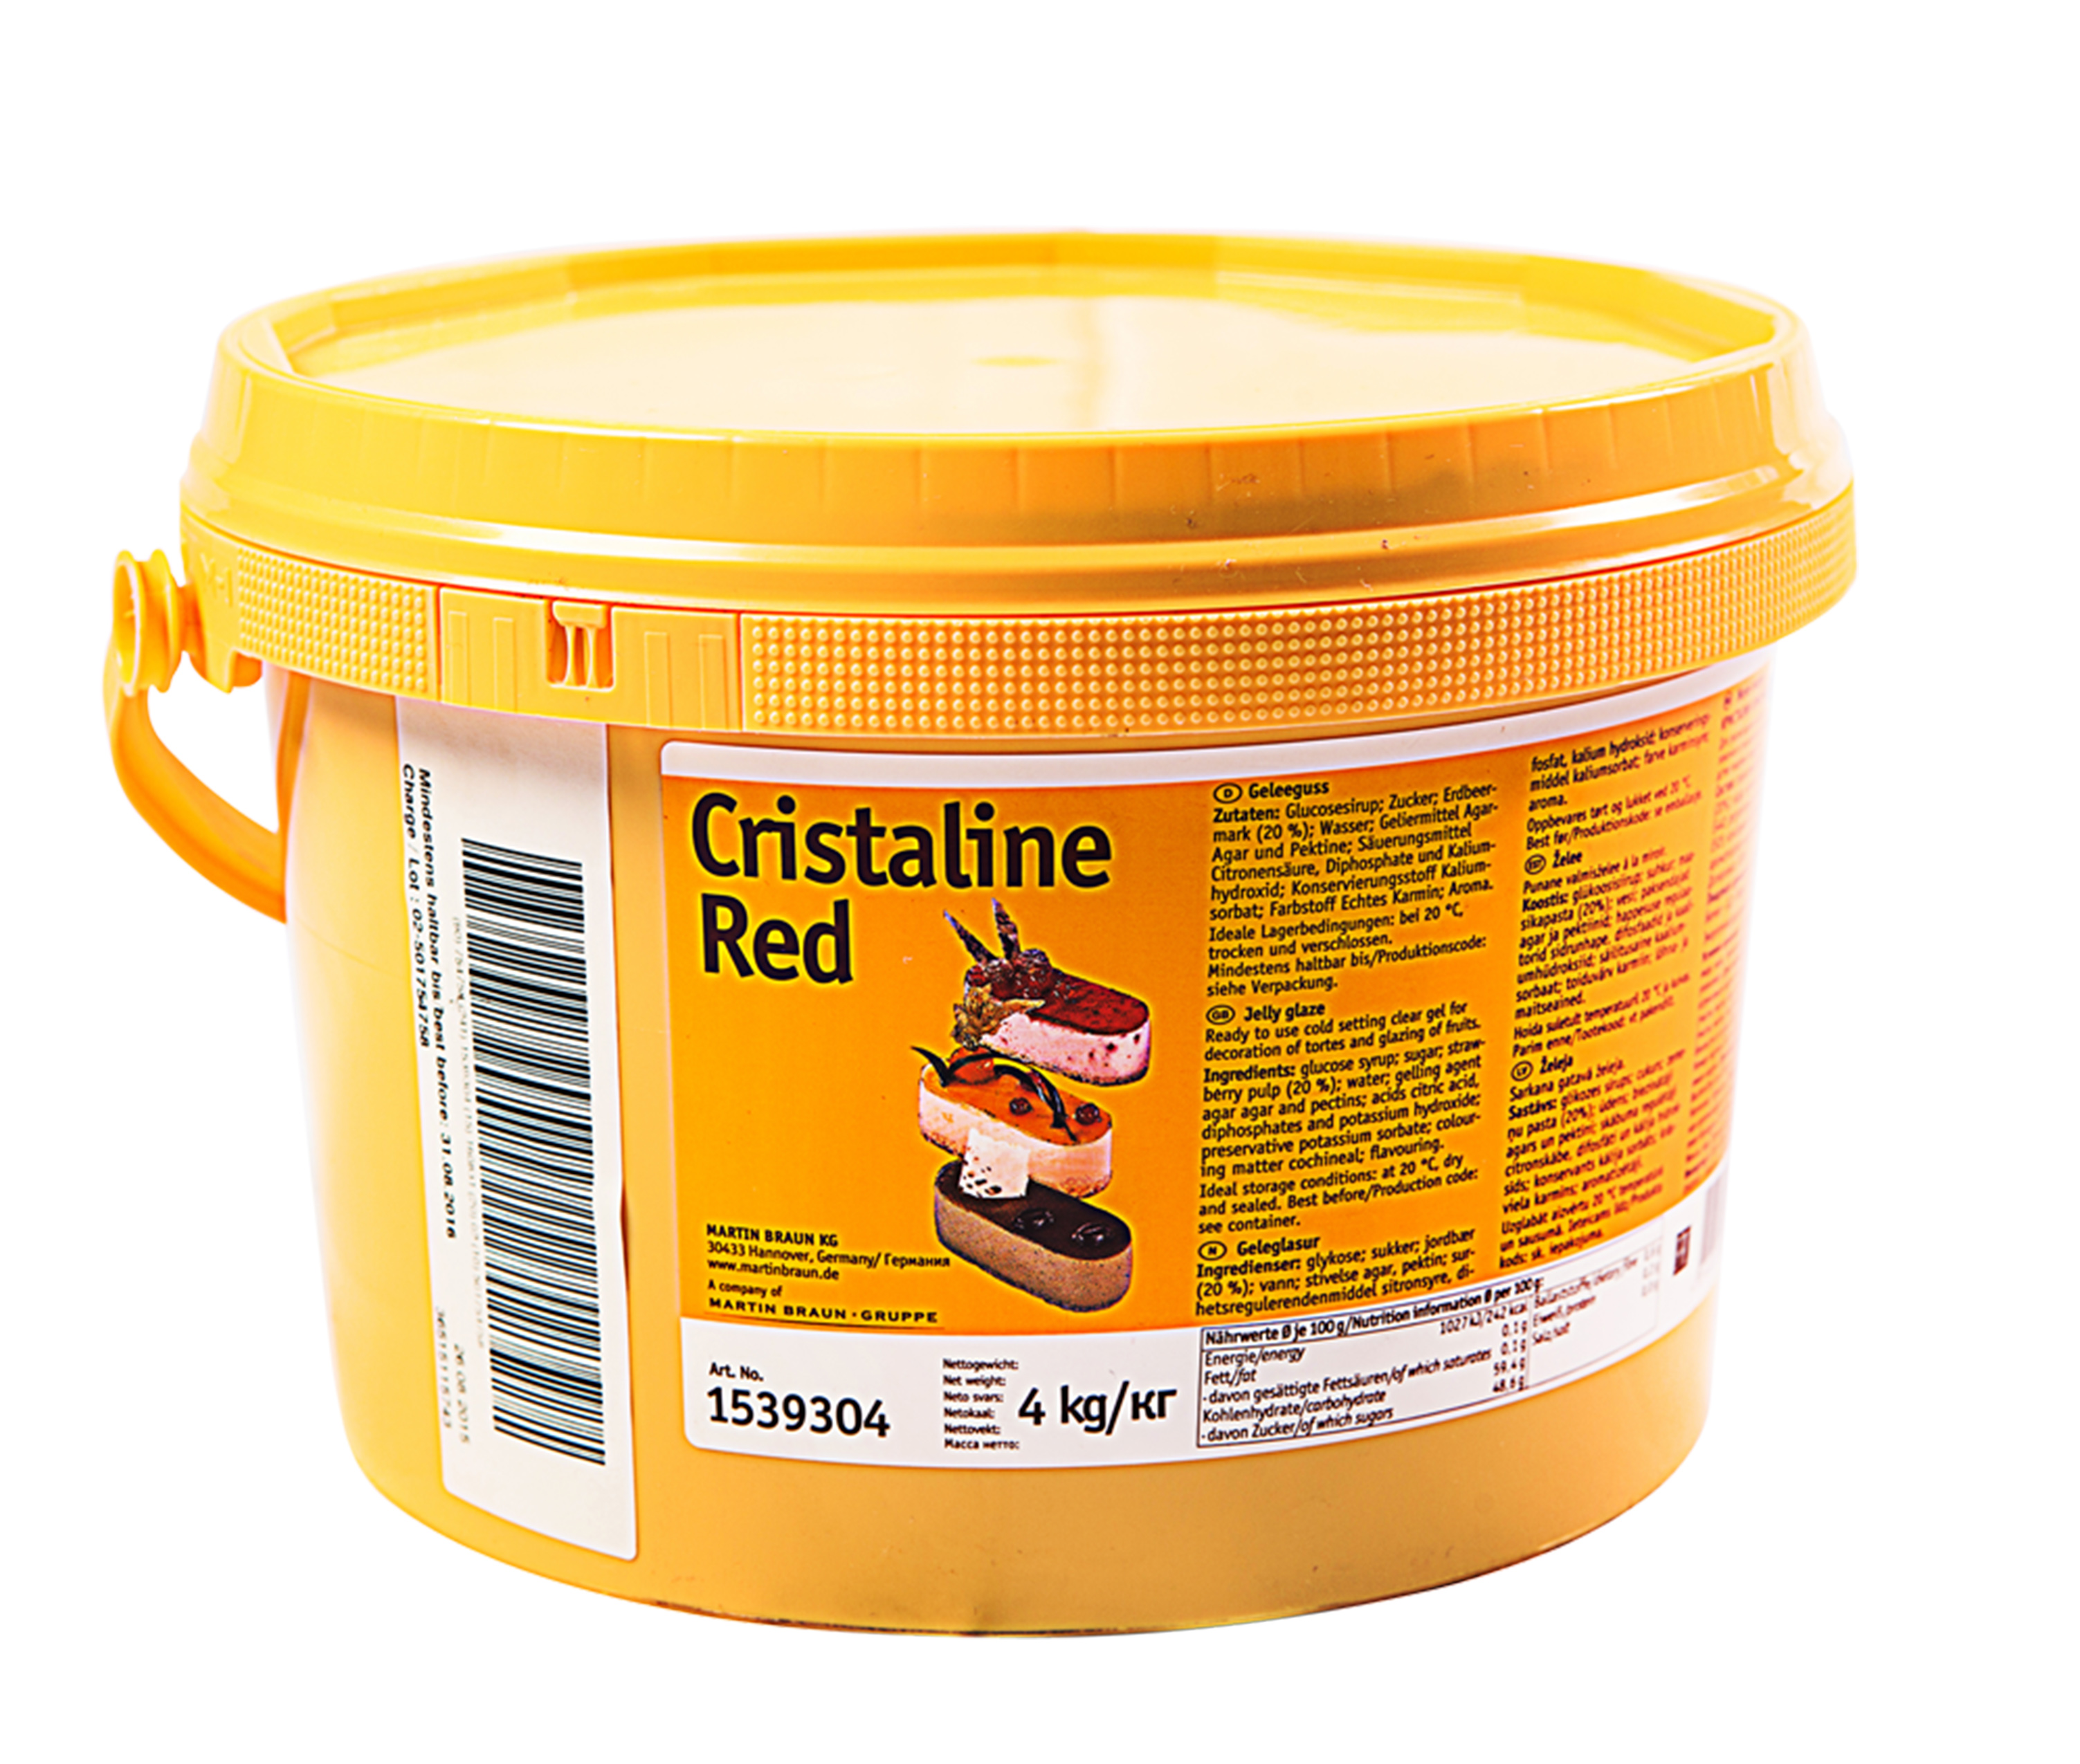 Cristaline Red Image